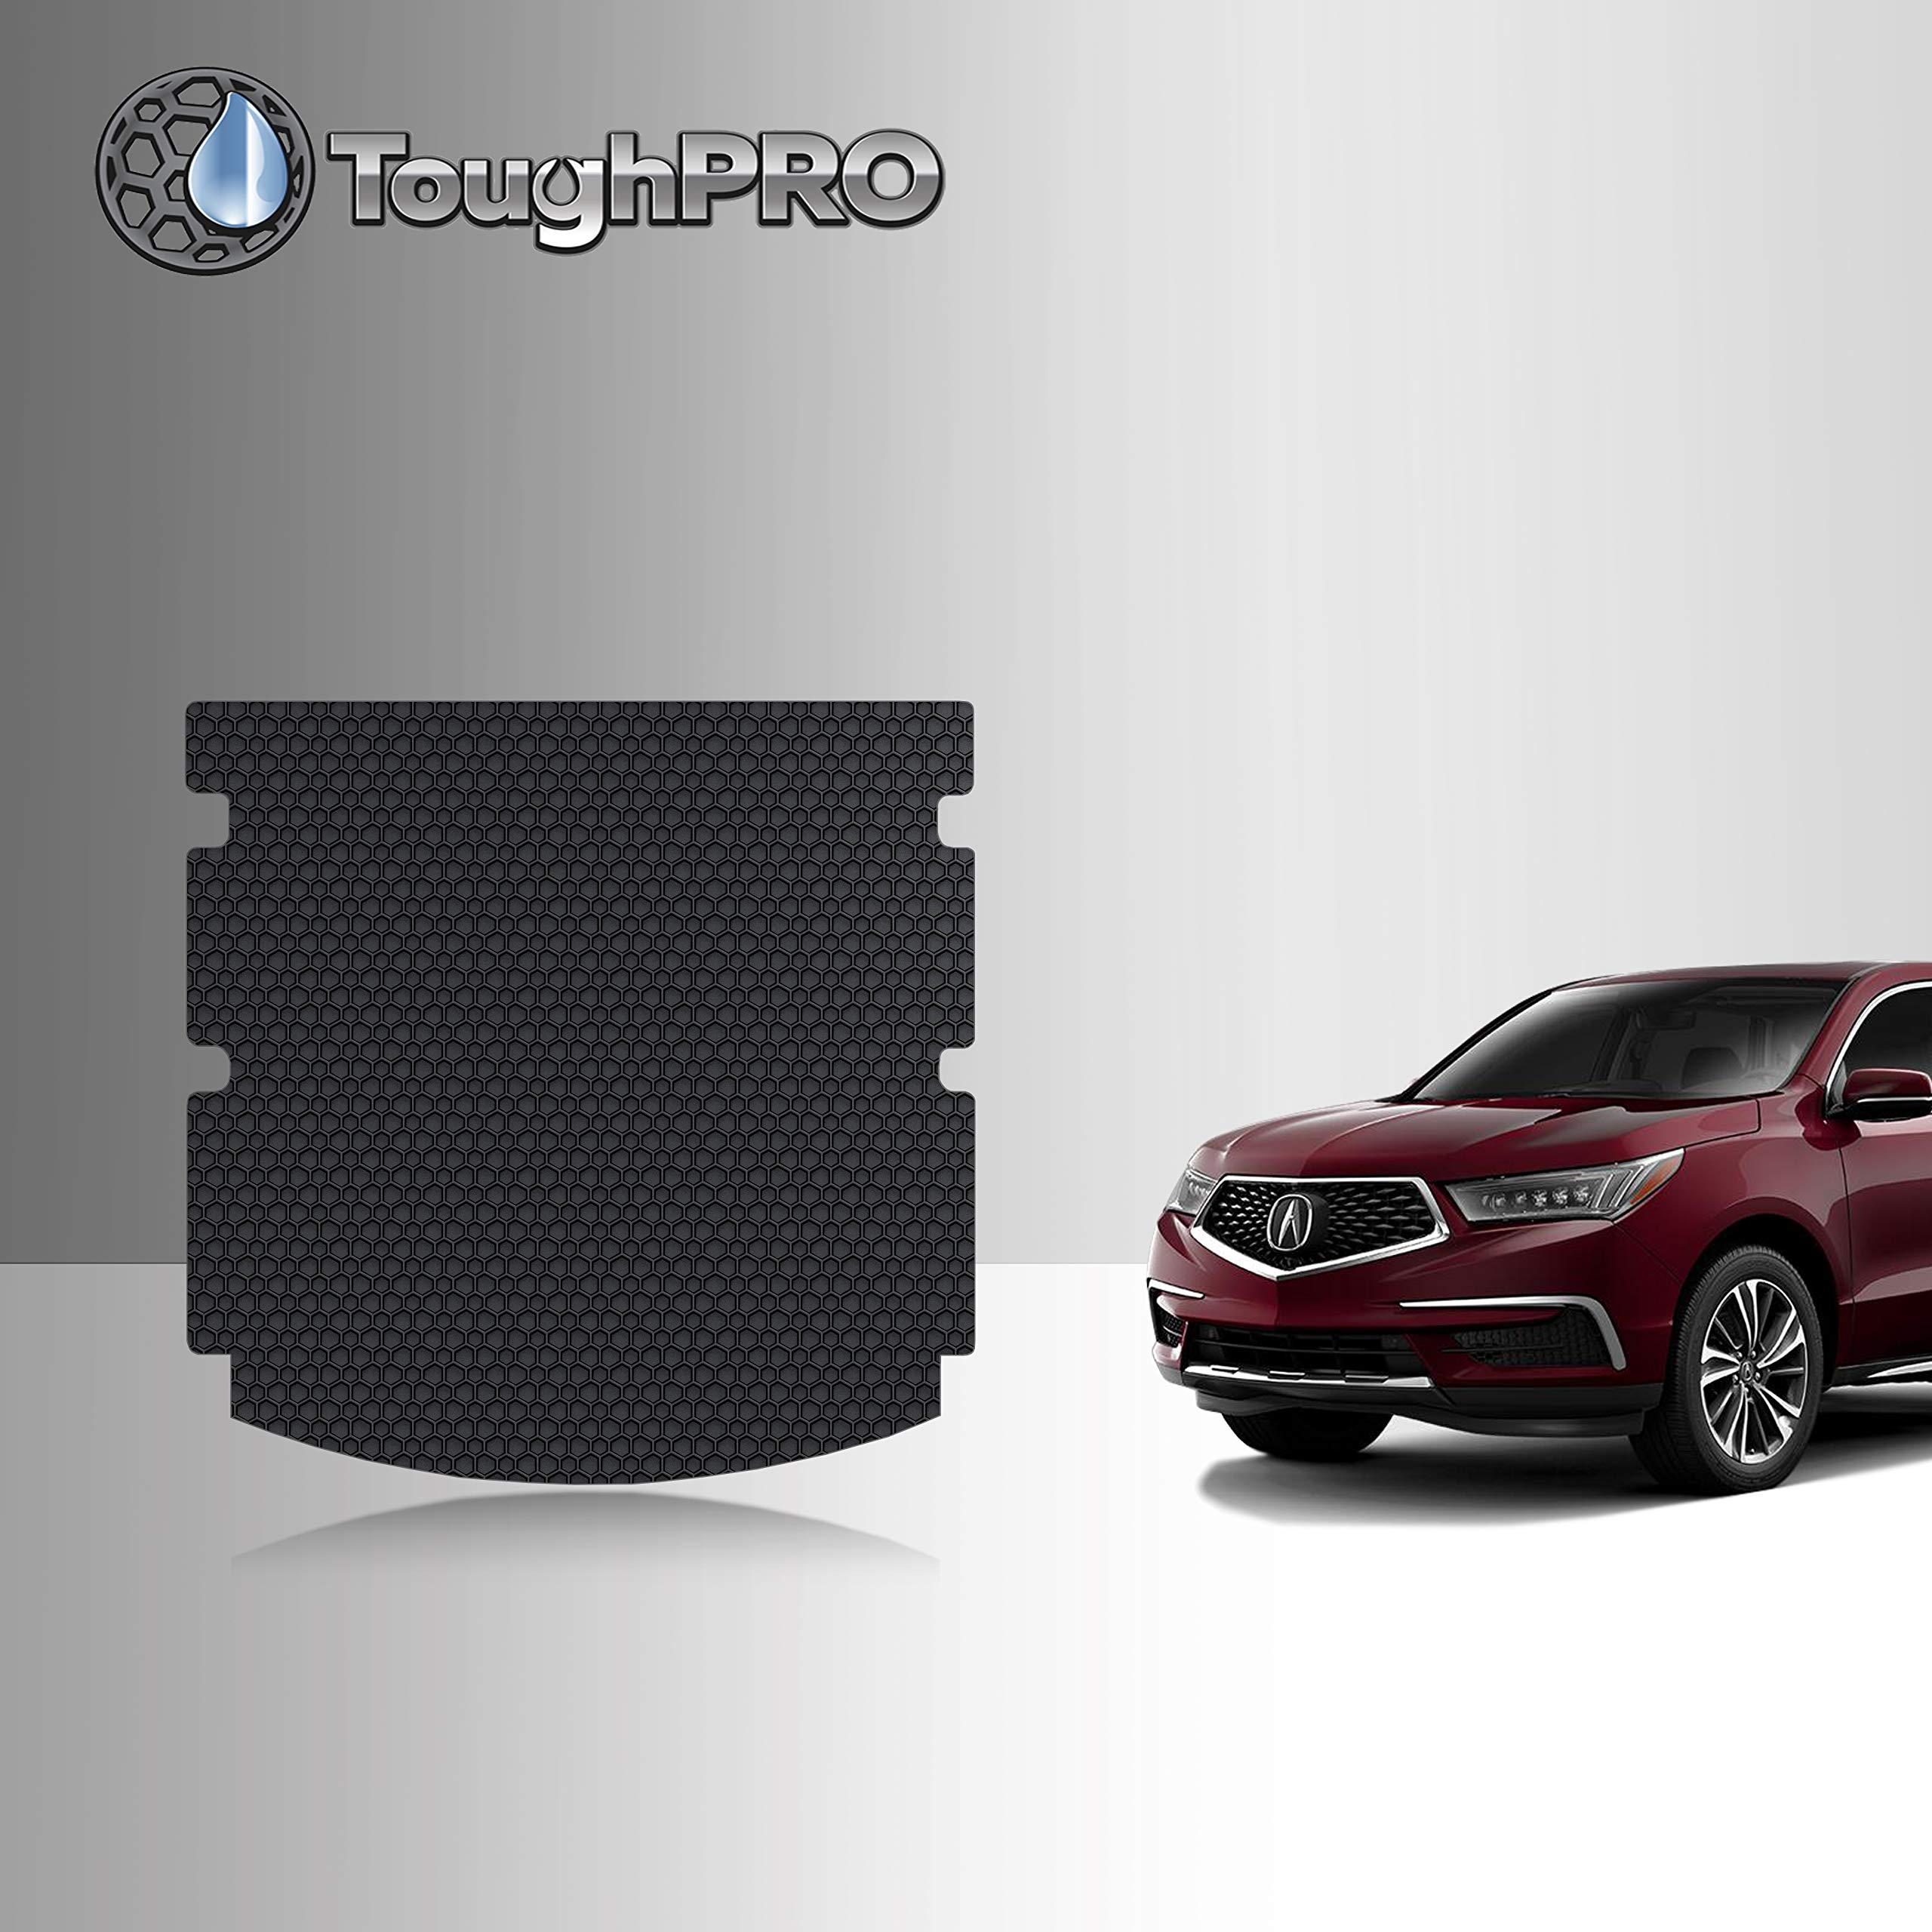 TOUGHPRO Cargo/Trunk Mat Compatible with Acura MDX - All Weather - Heavy Duty - (Made in USA) - Black Rubber - 2014, 2015, 2016, 2017, 2018, 2019, 2020